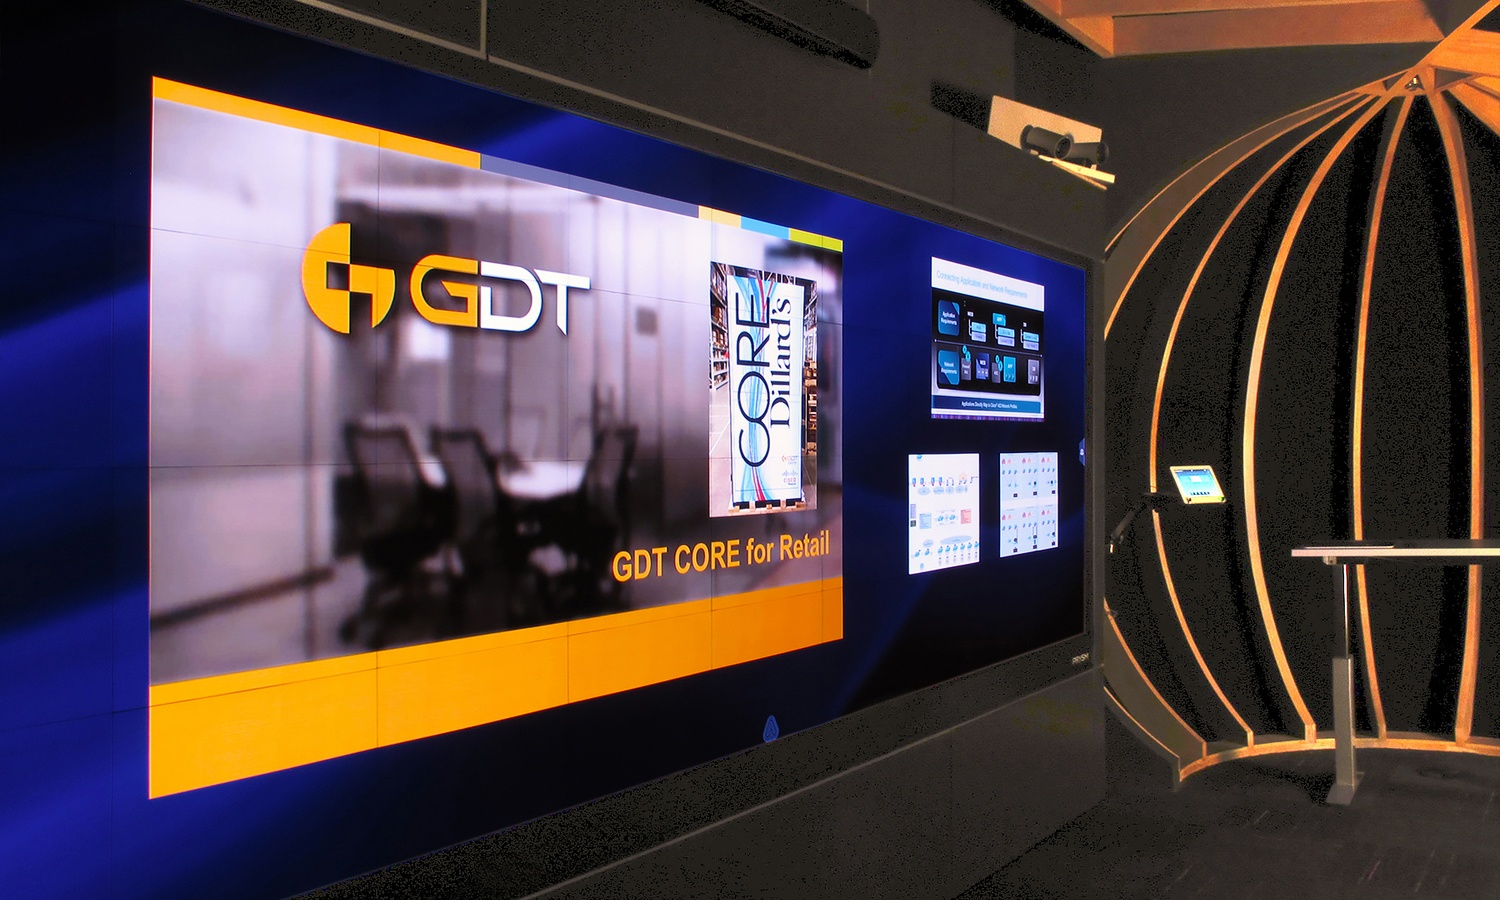 prysm-visual-workplace-solution-at-gdt.jpg